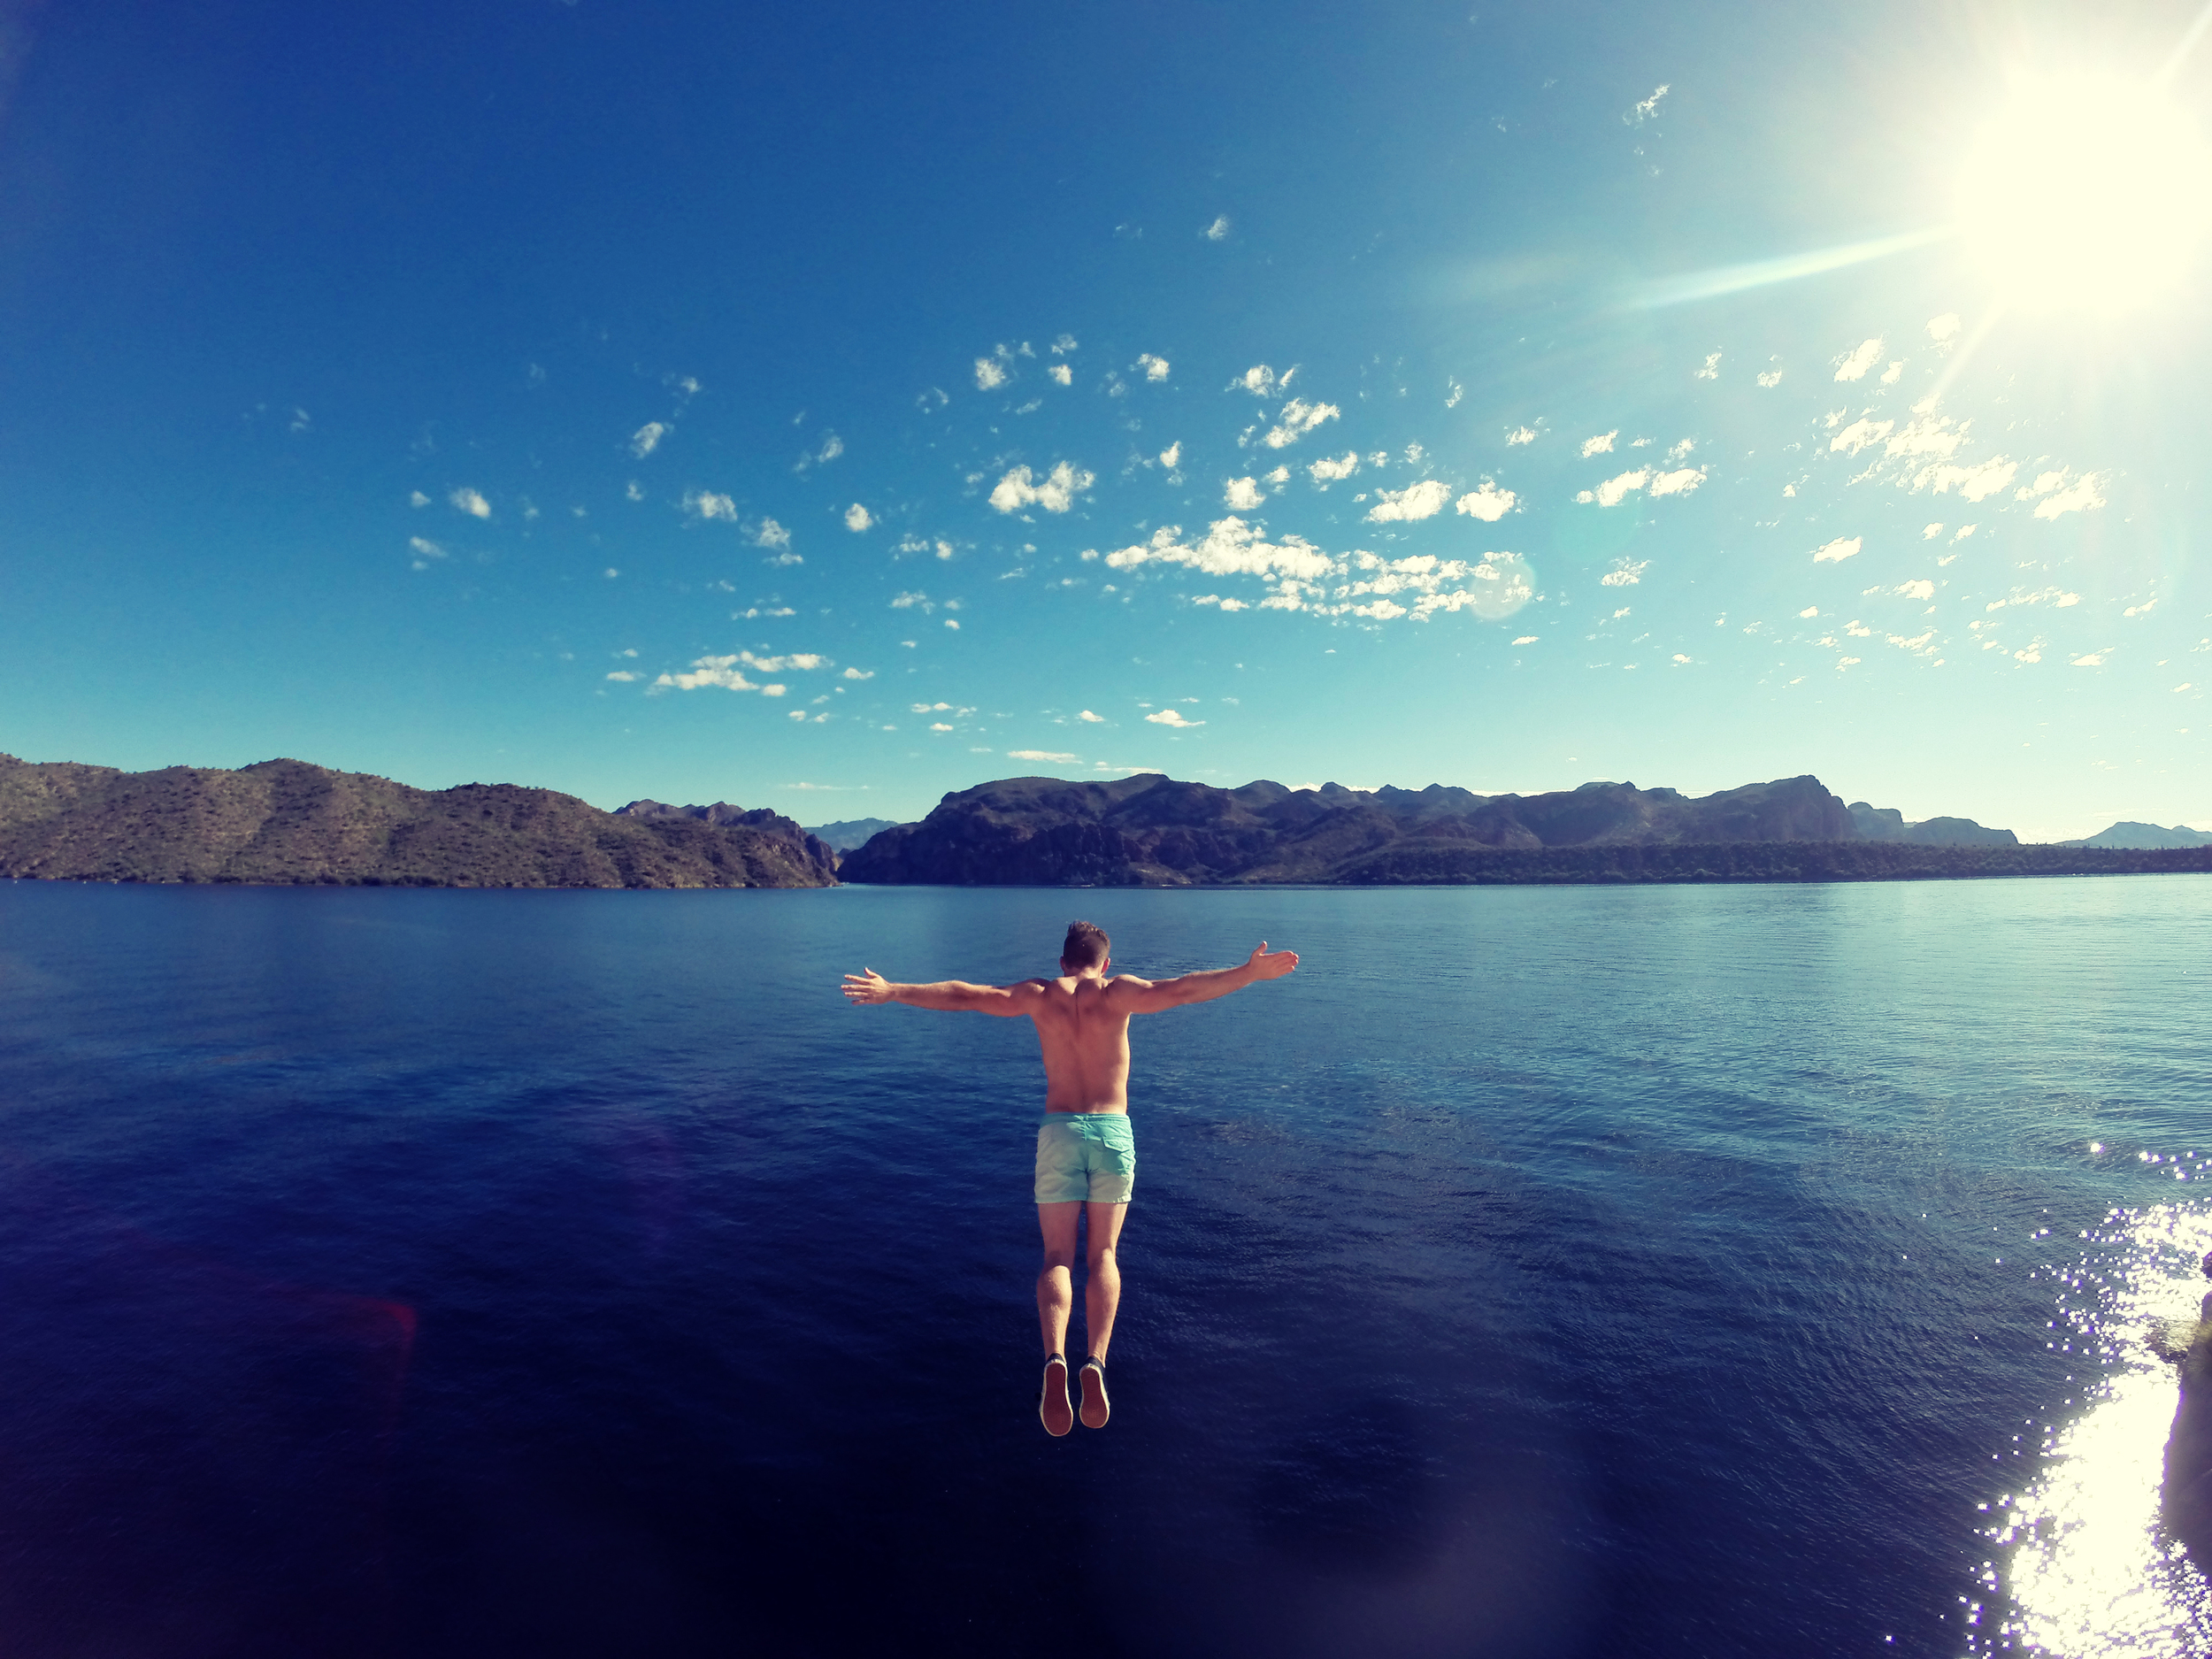 Cliff jumping at Saguaro Lake, Arizona.